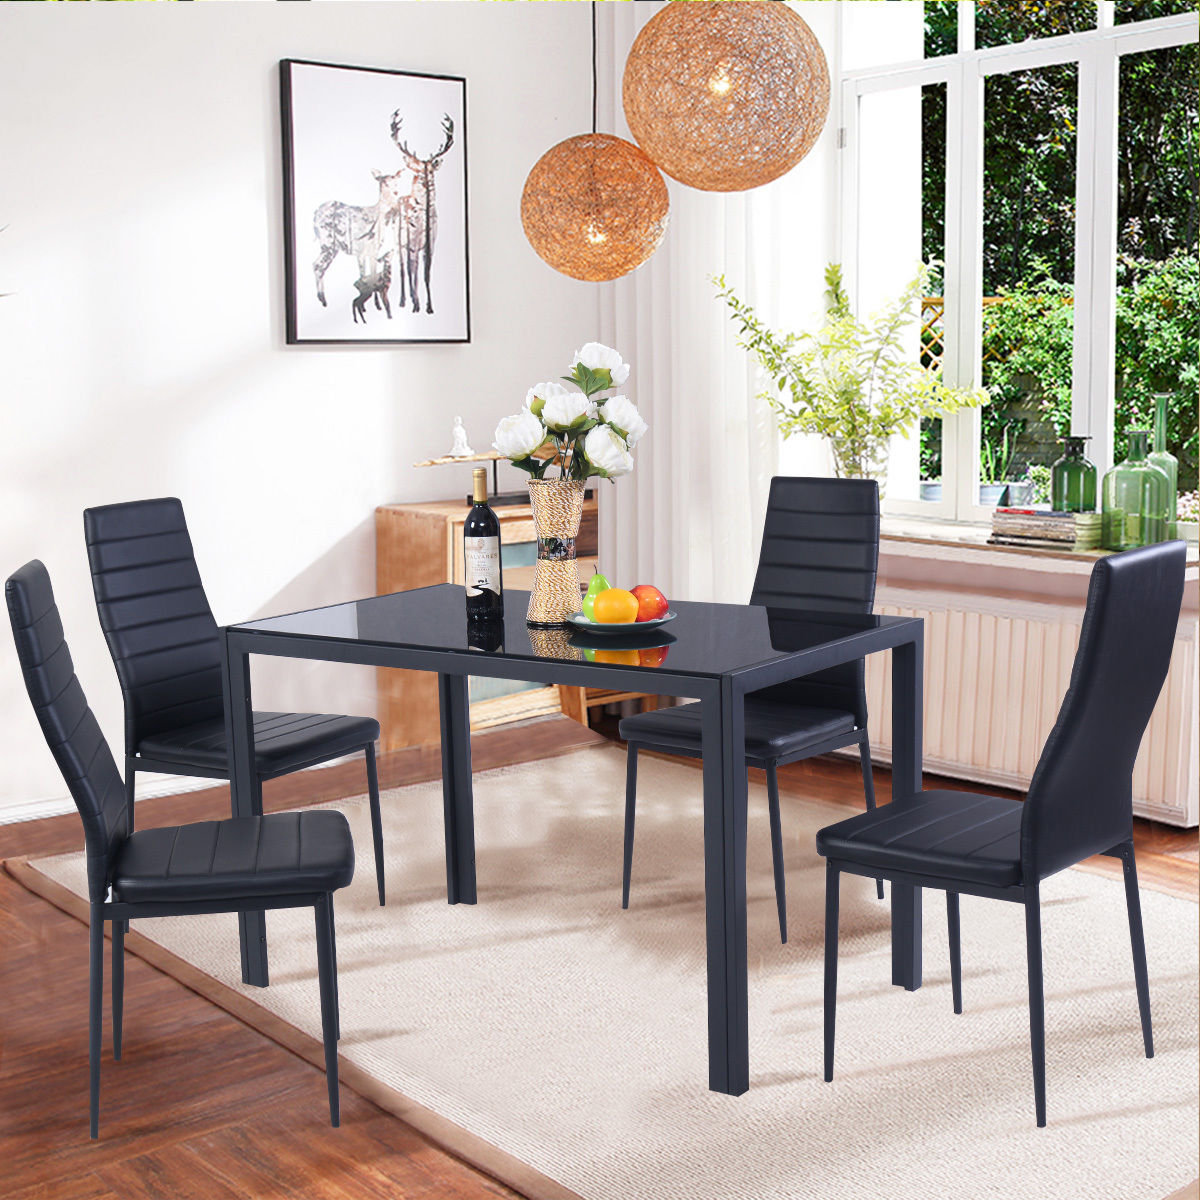 costway 5 piece kitchen dining set glass metal table and 4 chairs breakfast furniture - Kitchen Glass Table